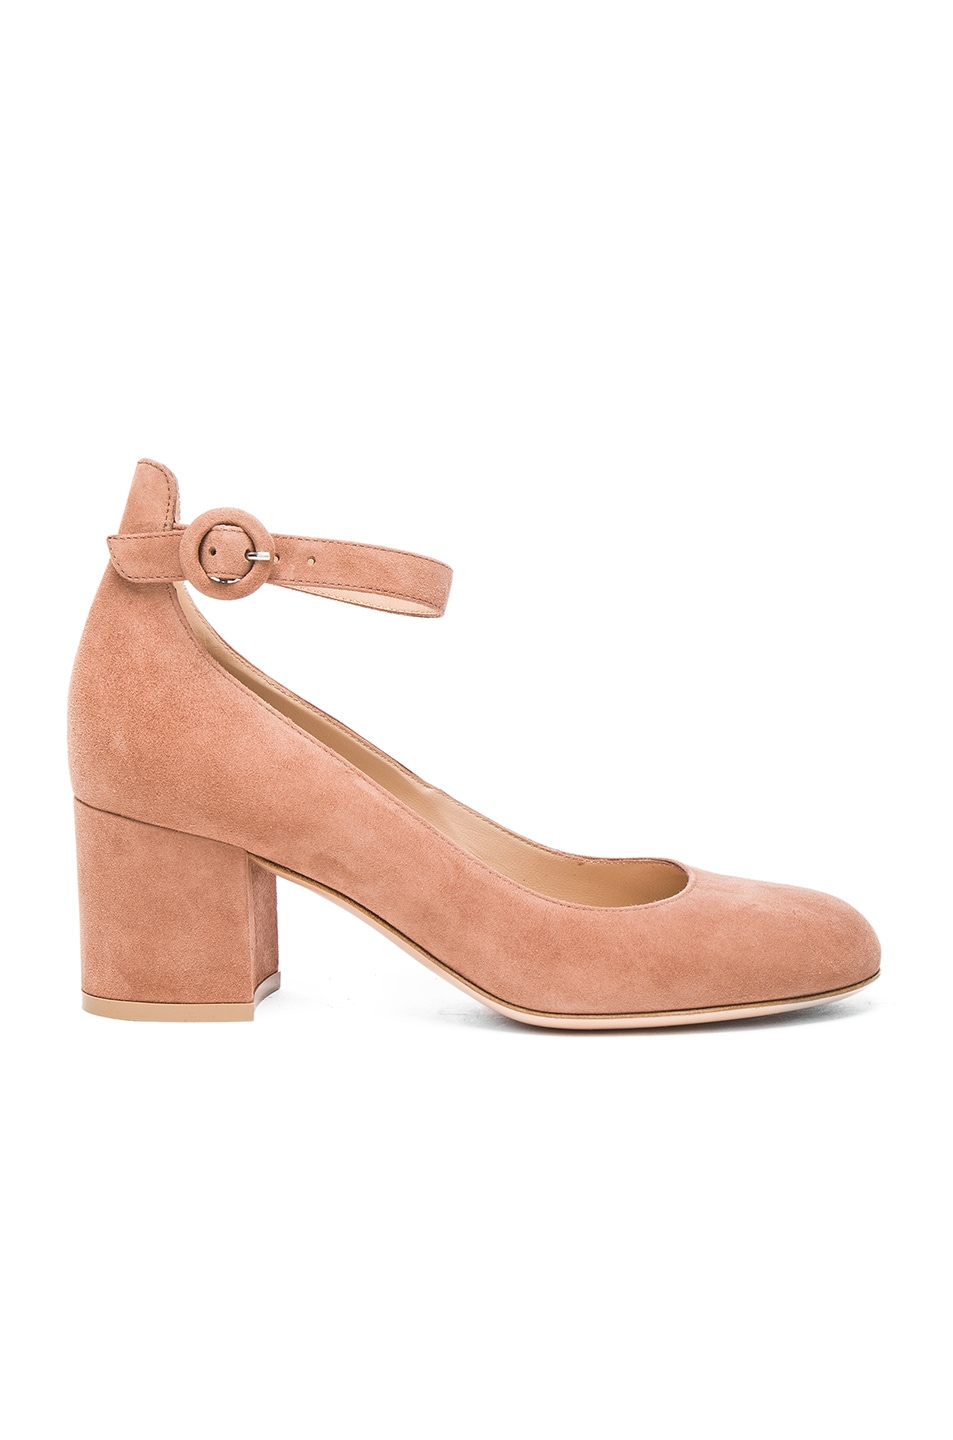 Image 1 of Gianvito Rossi Suede Ankle Strap Flats in Praline